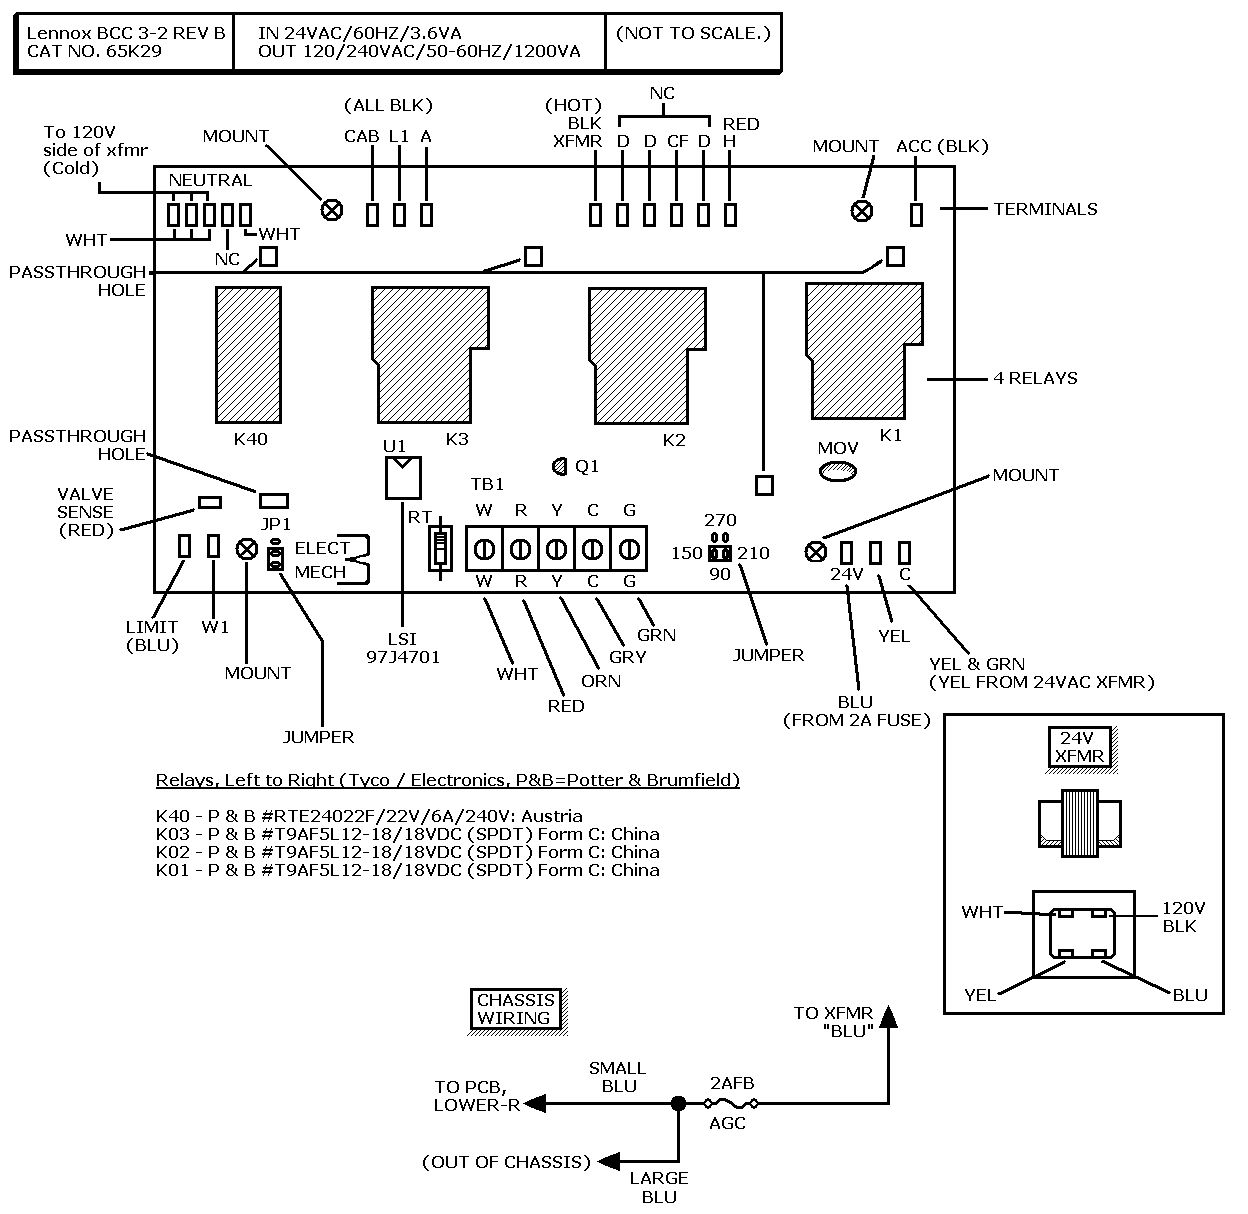 fresh lennox furnace thermostat wiring diagram 18 in fender jazz andfresh lennox furnace thermostat wiring diagram [ 1248 x 1214 Pixel ]